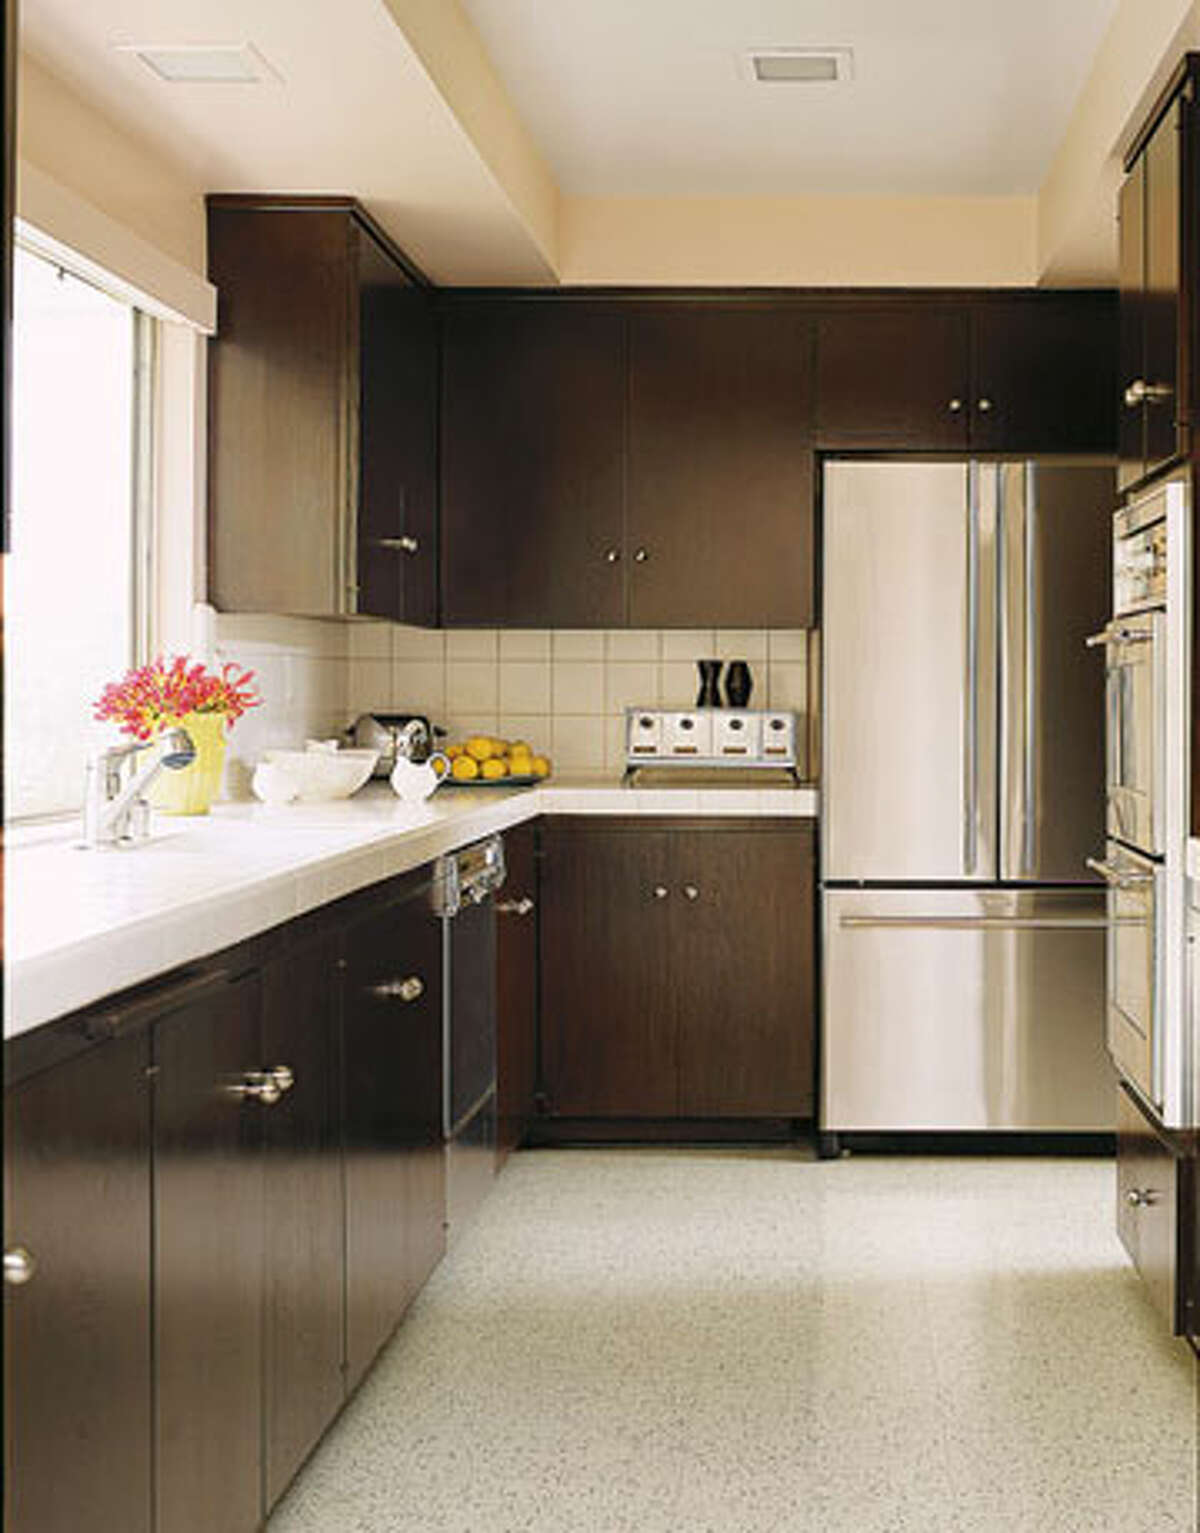 Love a streamlined look? Does clutter drive you crazy? You don't need to completely remodel to get European style. Designer Michael Berman renovated this kitchen by laying linoleum floor and staining the original walnut cabinets the color of black tea to set off the white tile of the countertops. Reprinted with Permission of Hearst Communications, Inc. Originally Published: What's Your Kitchen Style? John Coolidge